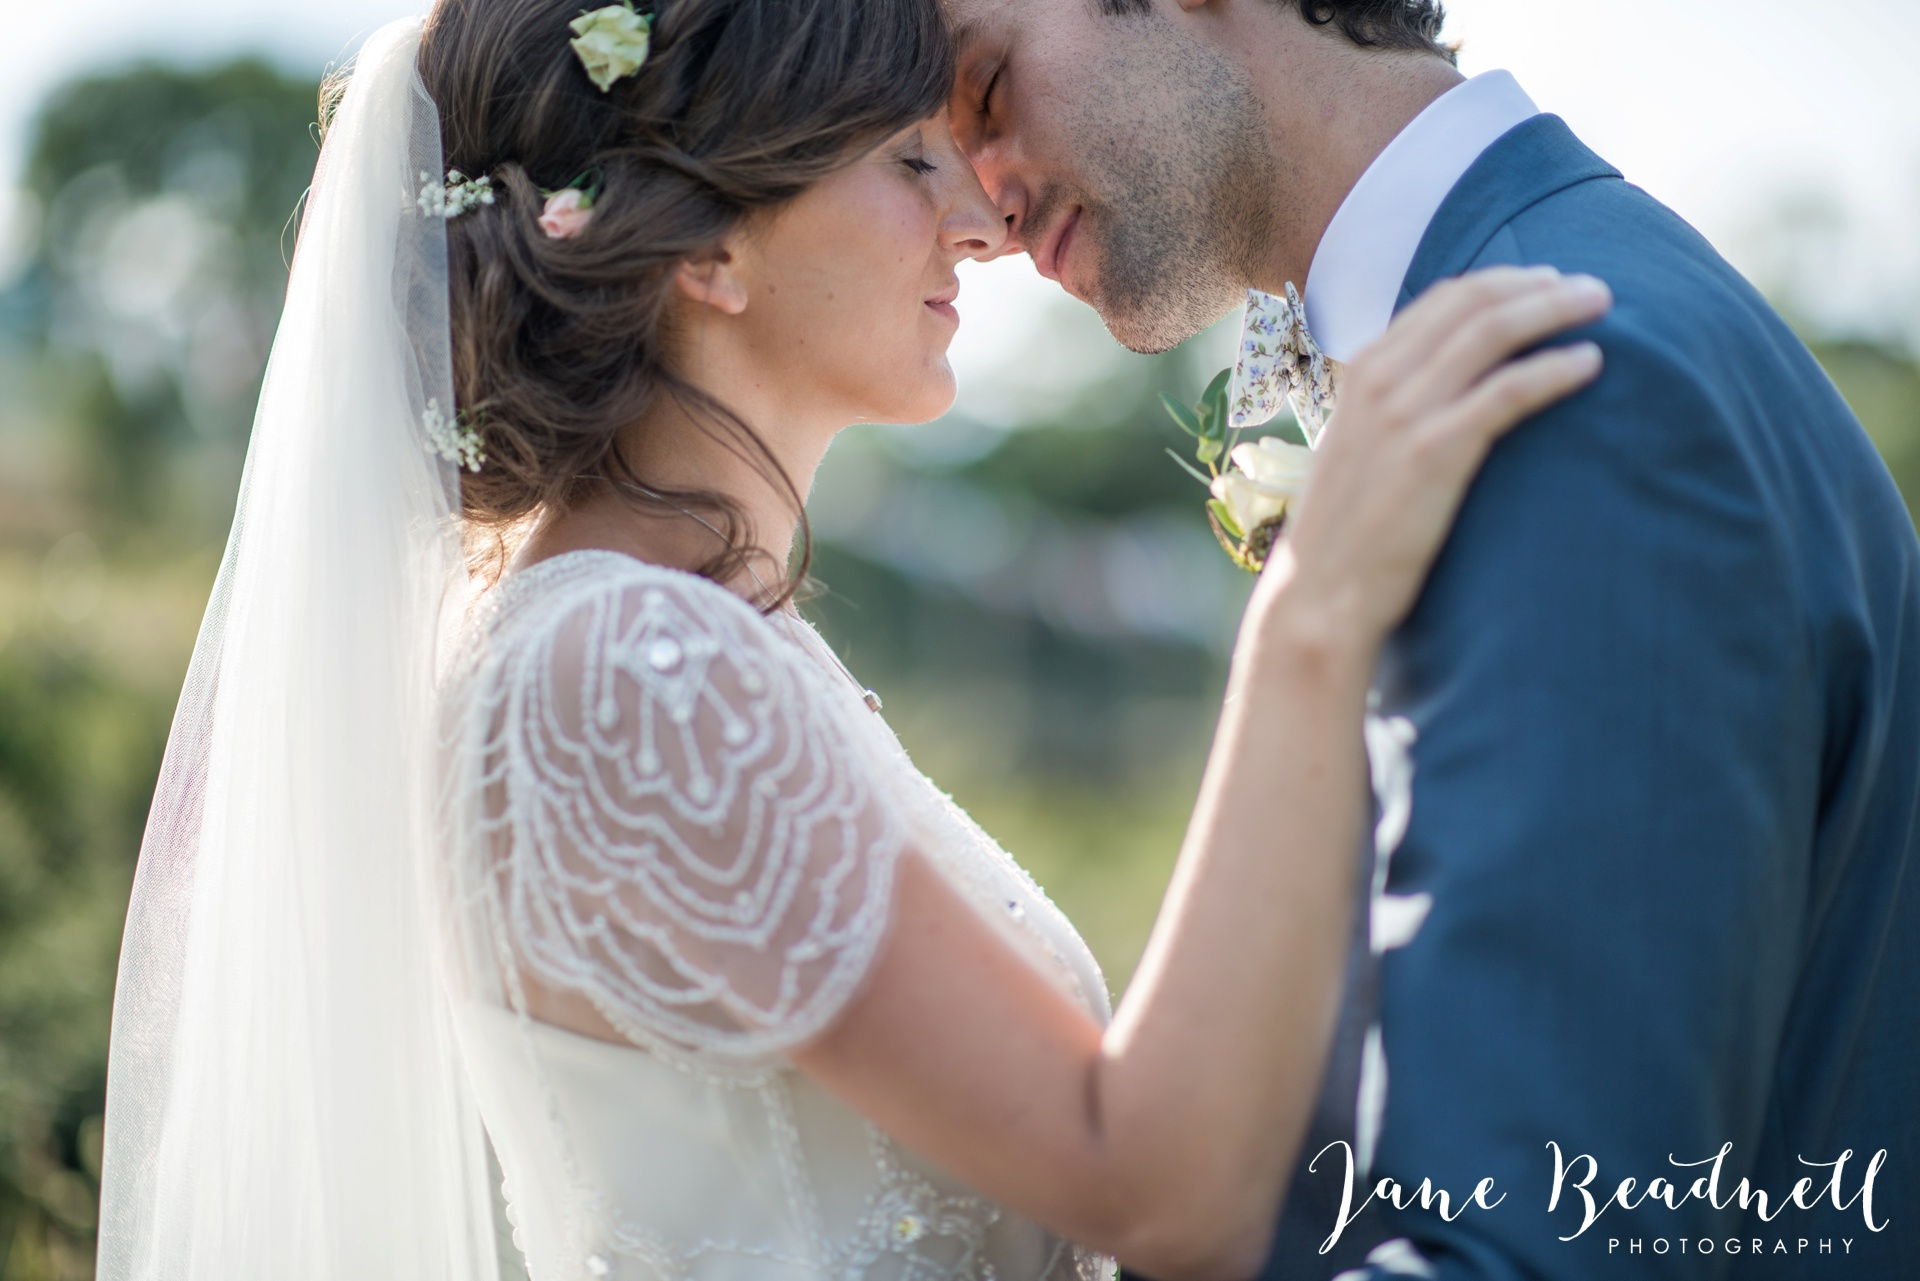 Jane Beadnell fine art wedding photographer Leeds_0089